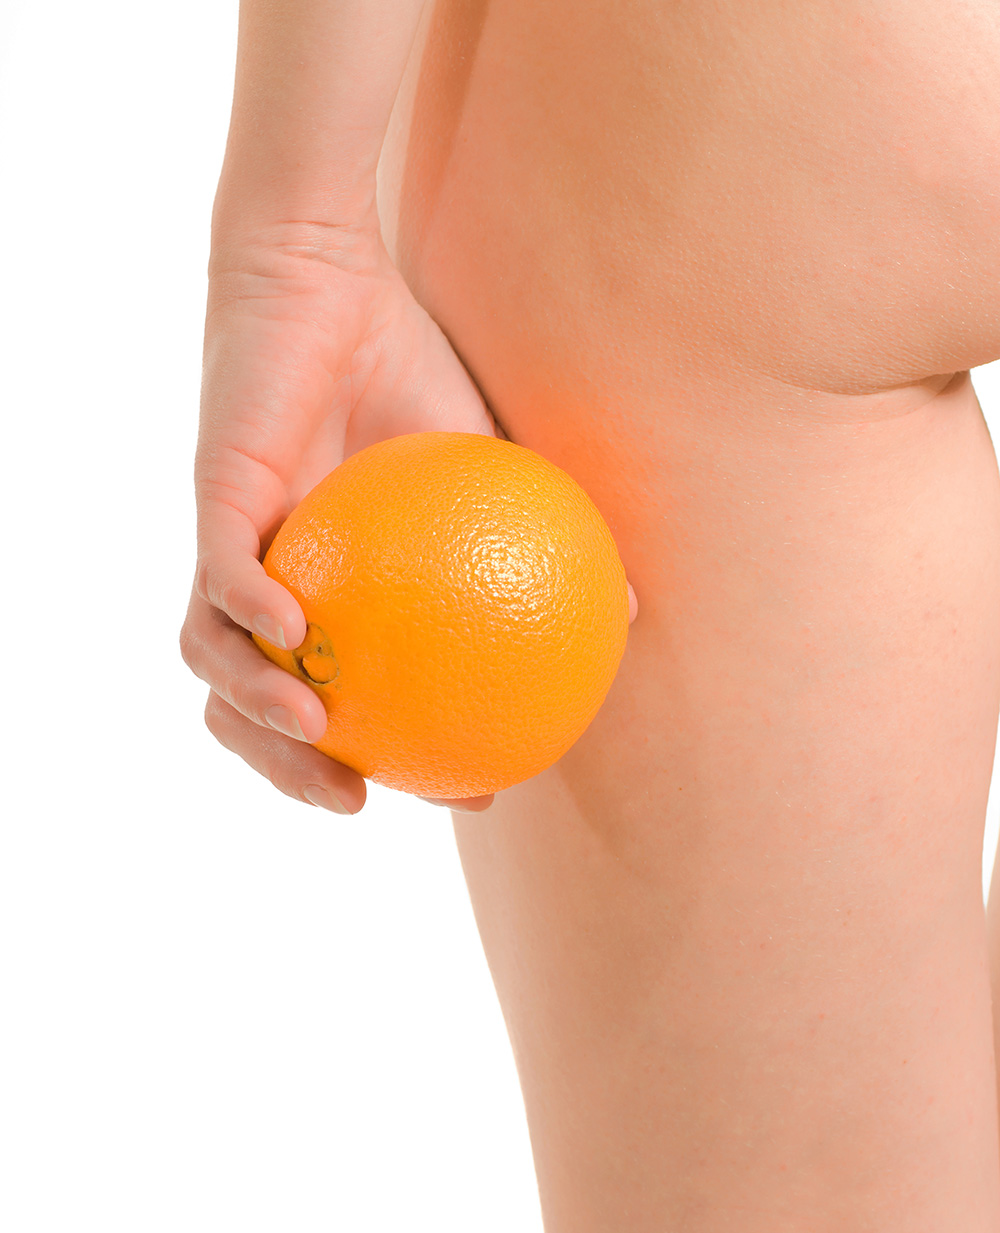 Radiofrequency treatment for skin tightening / cellulite / non-surgical bum lifting